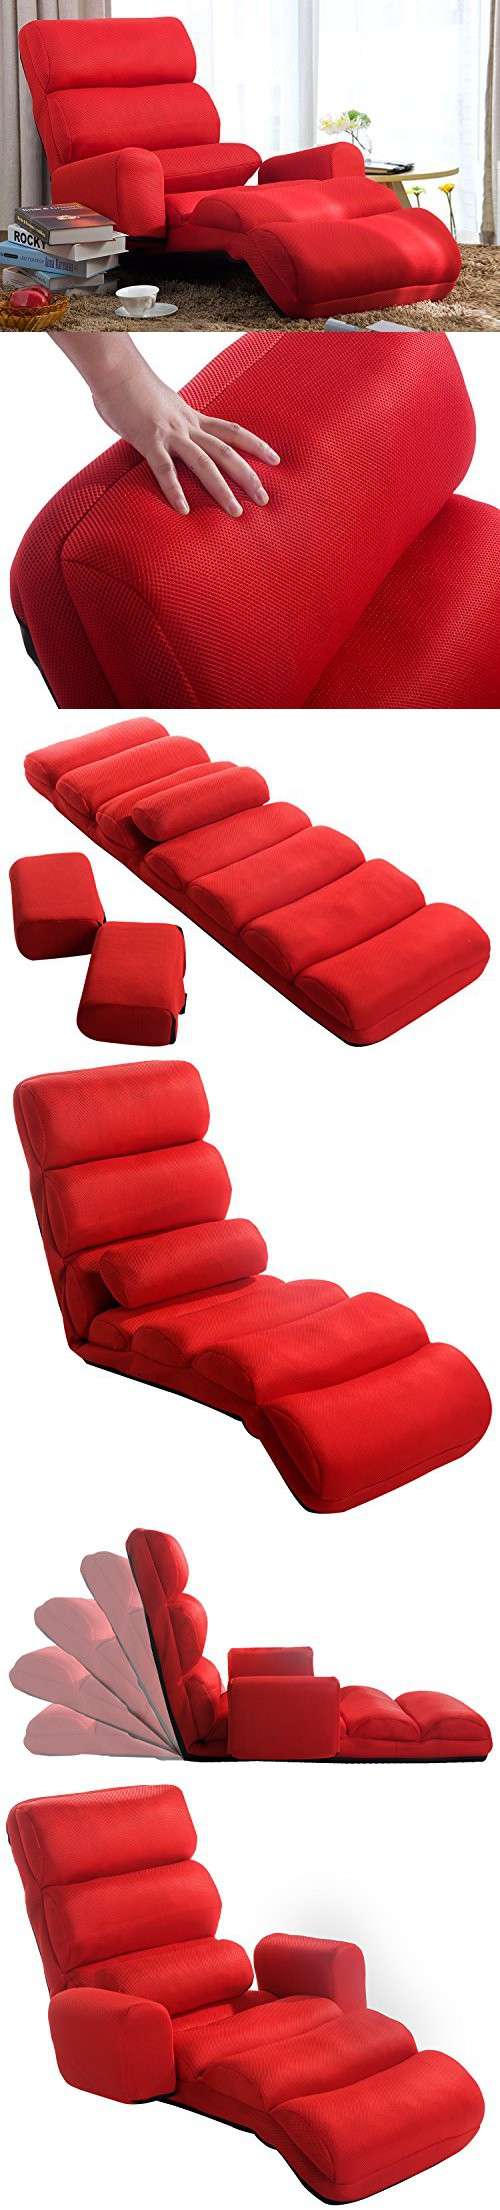 Merax Relaxing Foldable Lazy Sofa Chair With Pillow Stylish Sofa